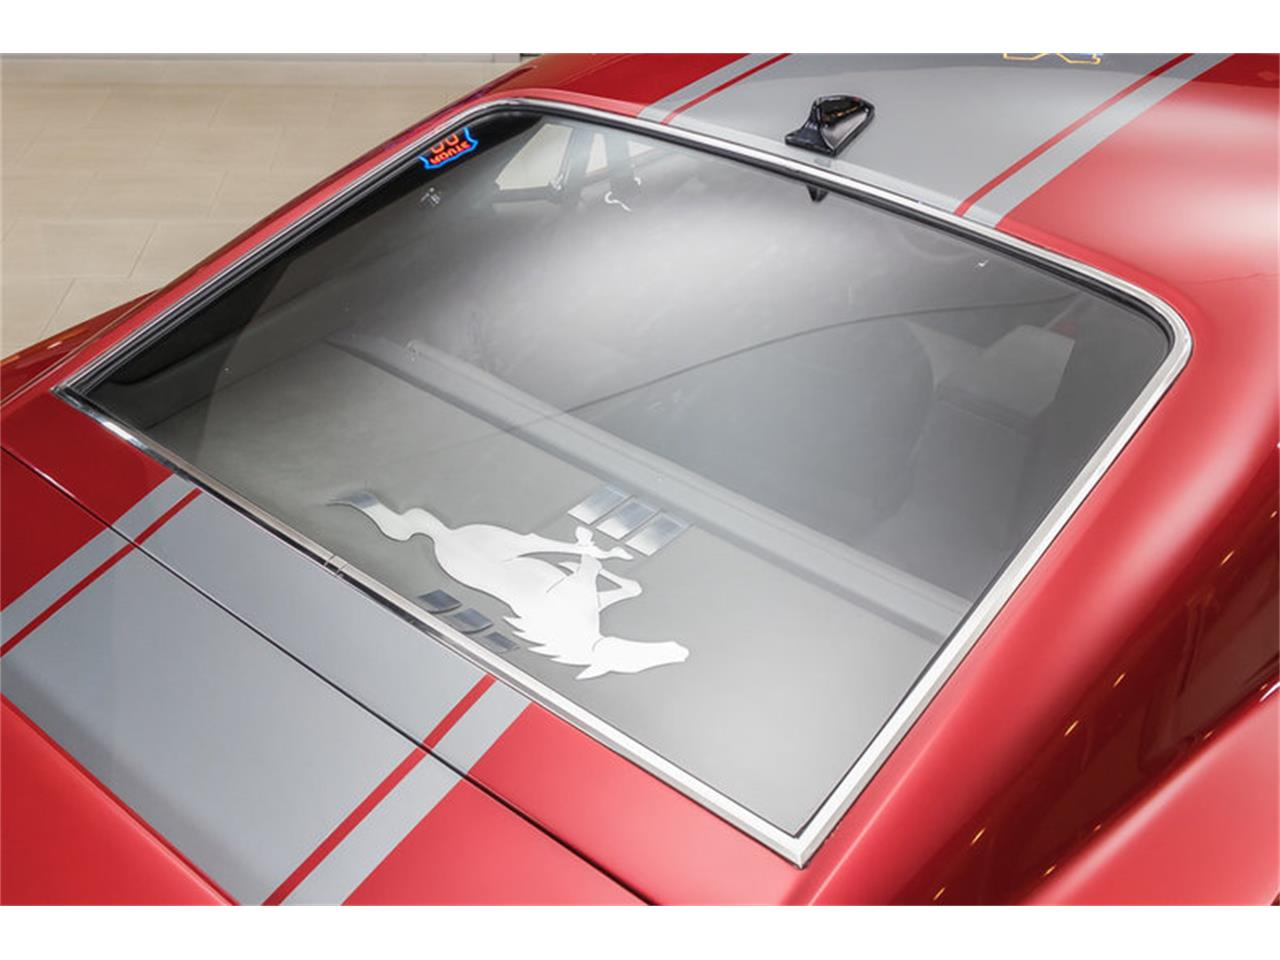 Large Picture of Classic 1969 Ford Mustang Fastback Restomod located in Michigan - $194,900.00 - L6C8